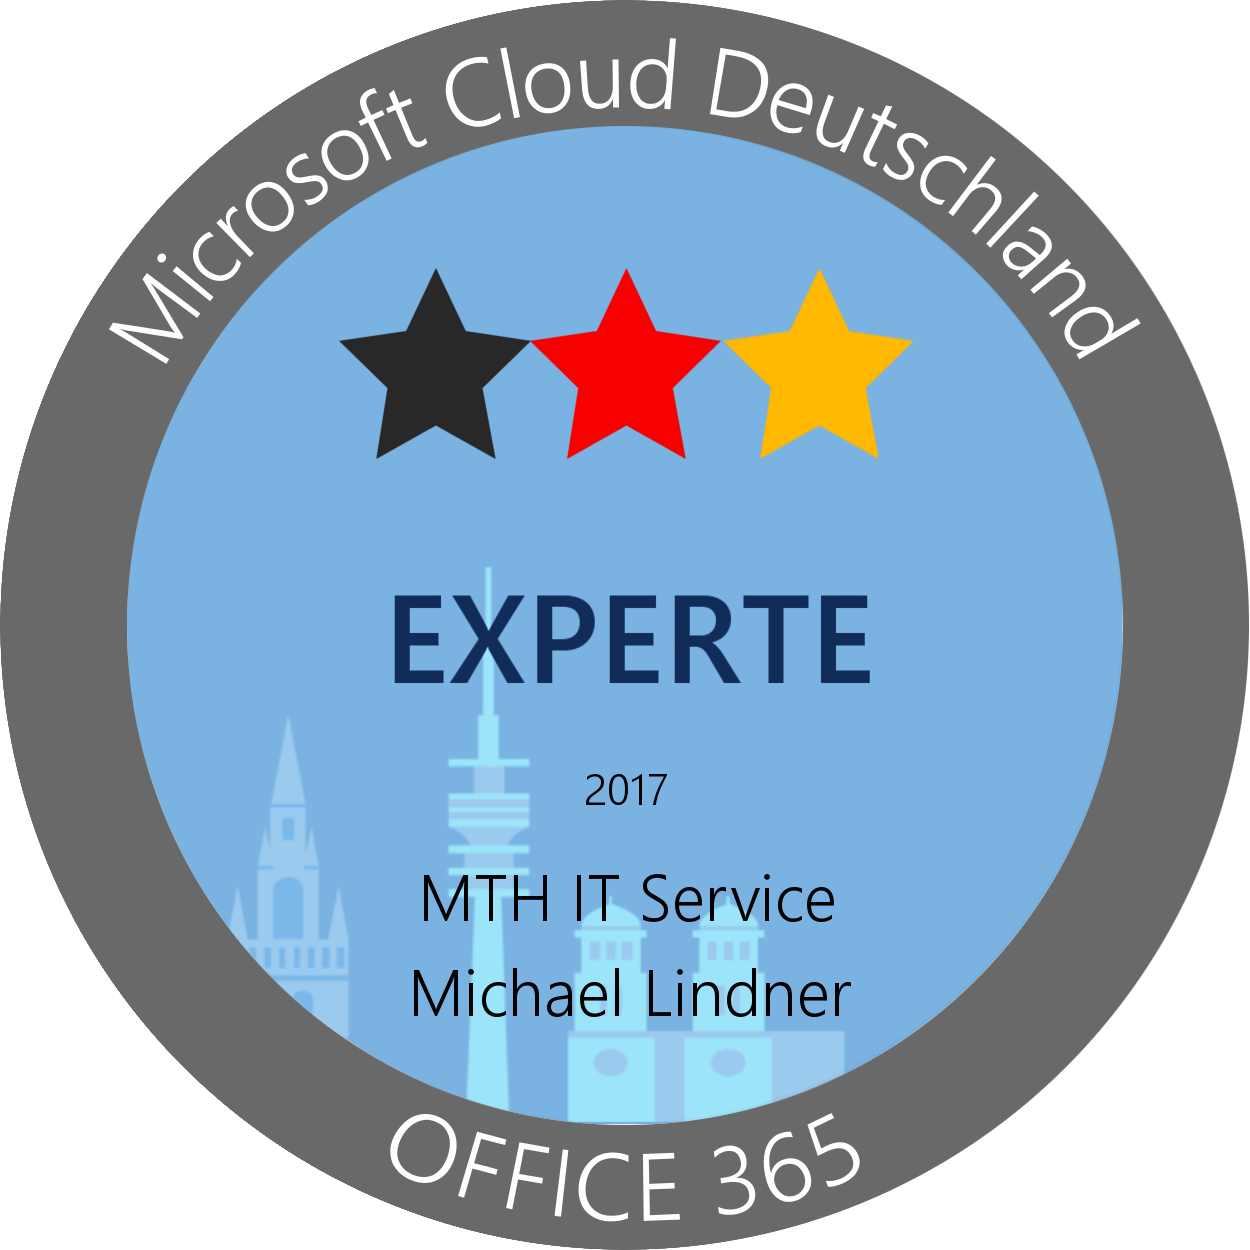 Microsoft Cloud Deutschland Experte Office 365